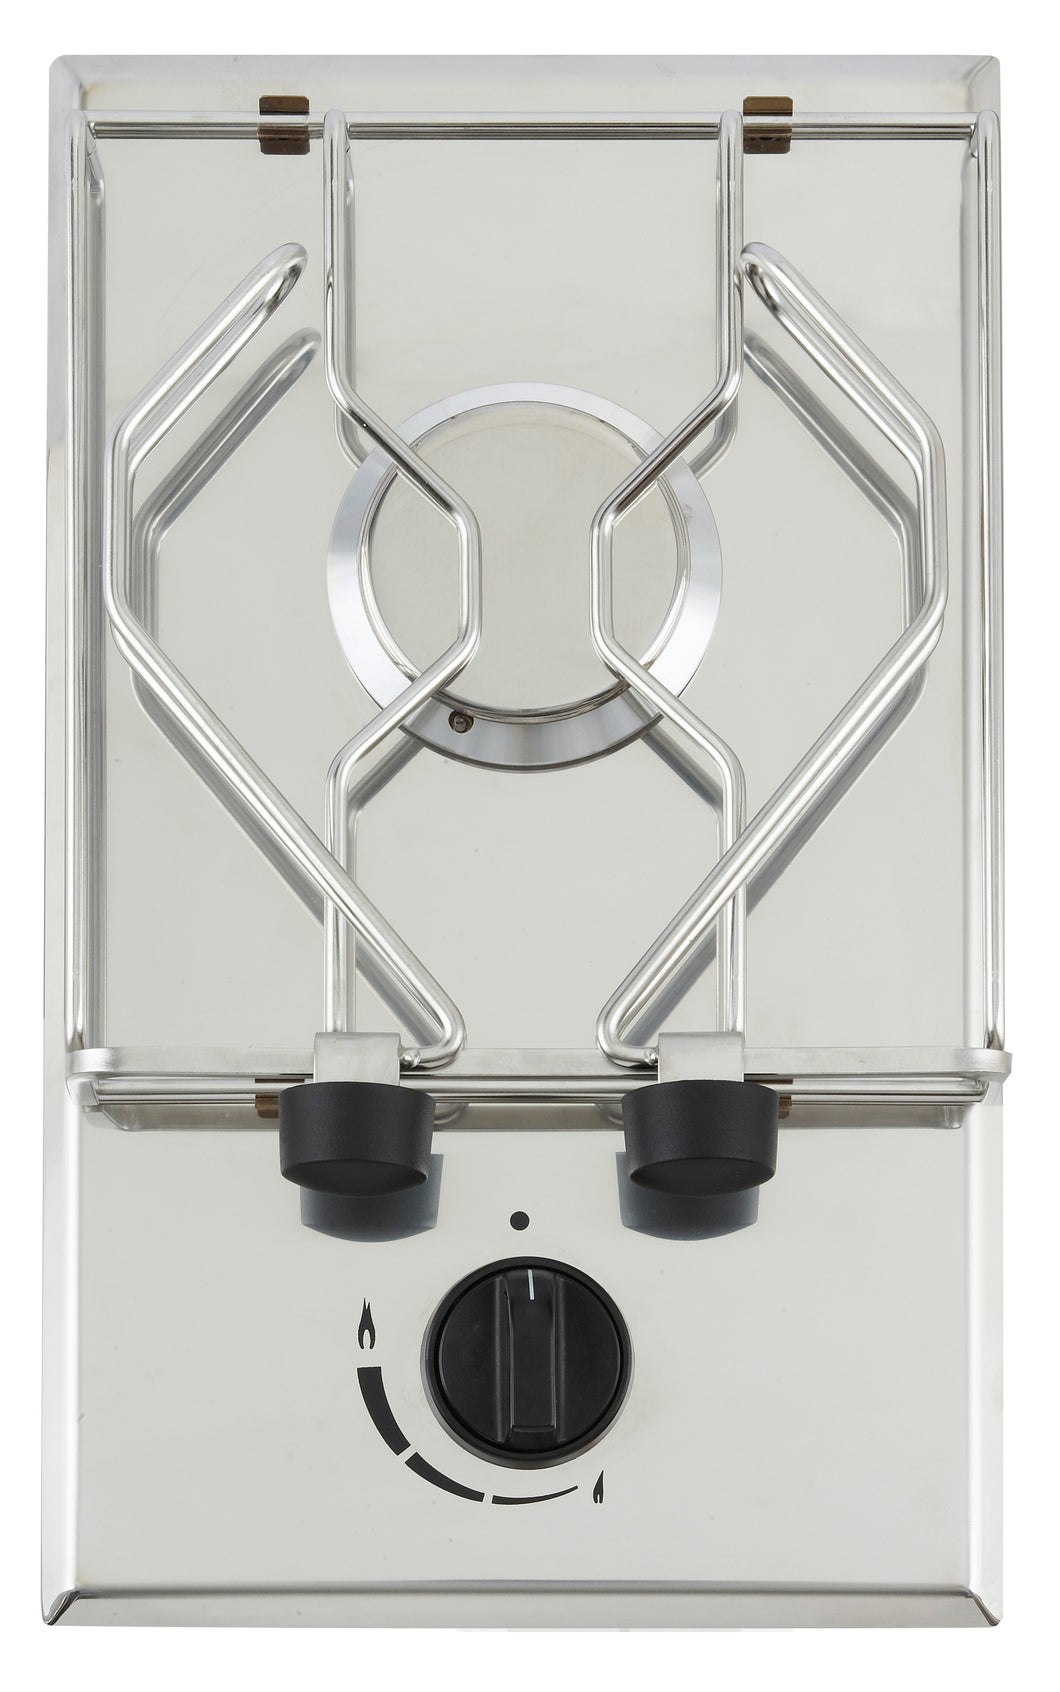 Hob Top - 1 Burner